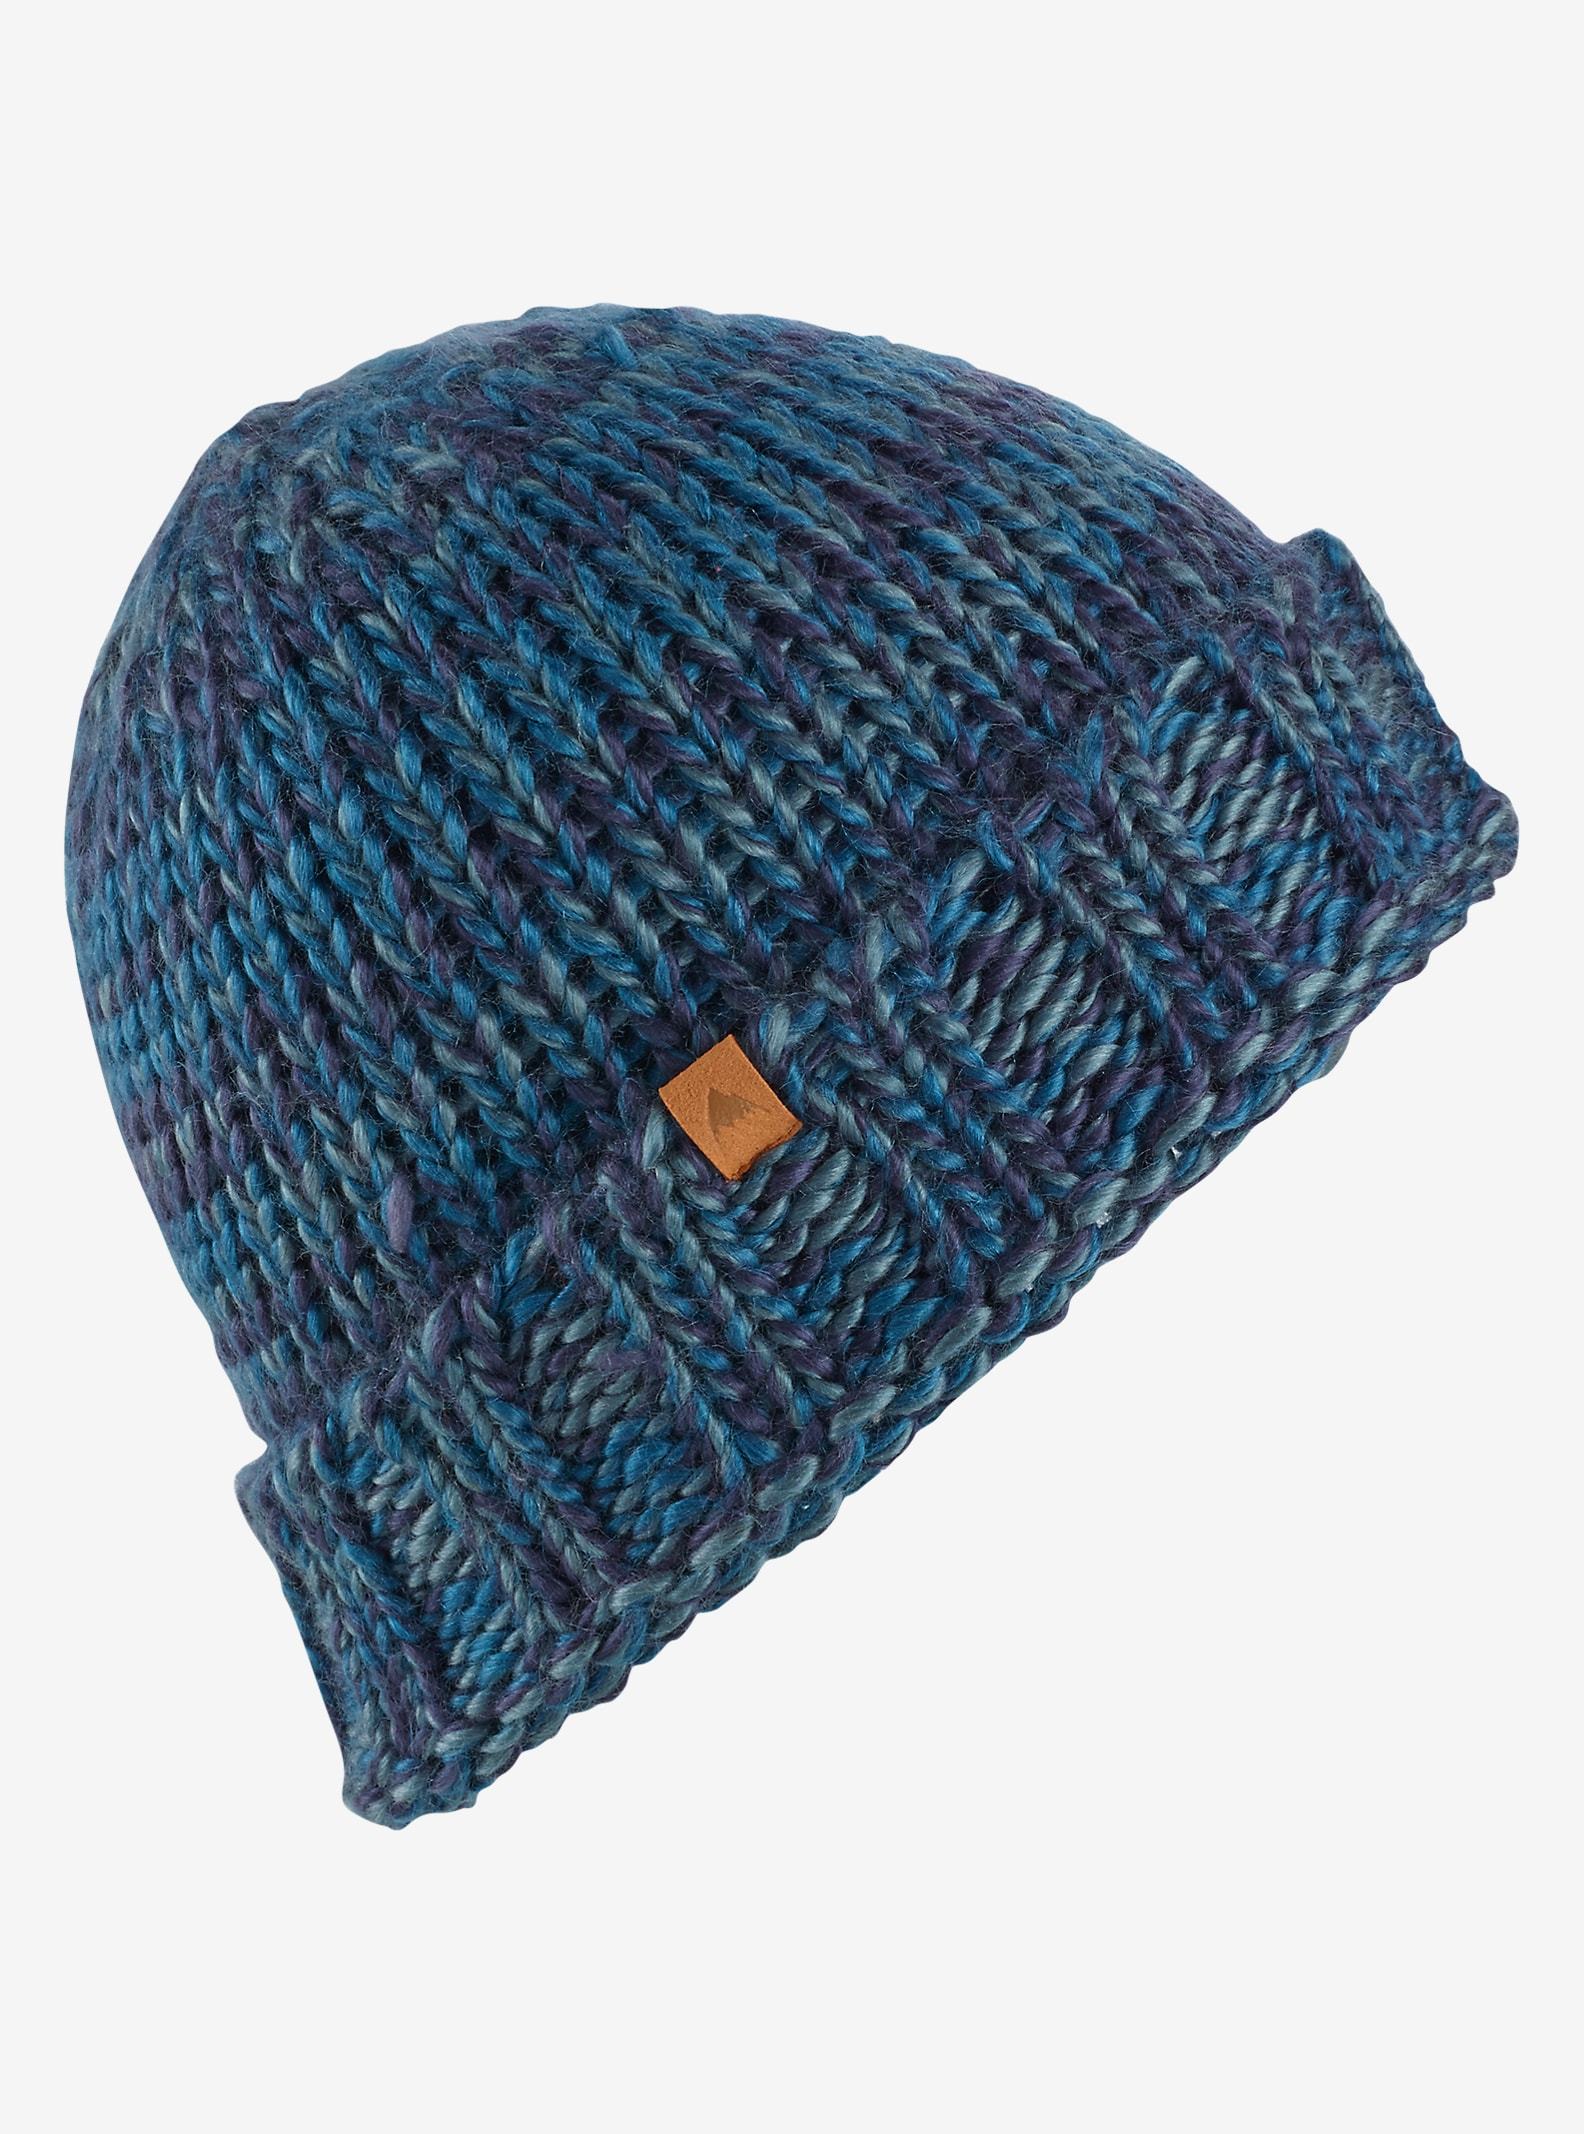 Burton Saltnpepper Beanie shown in Jaded / Tundra / Mood Indigo